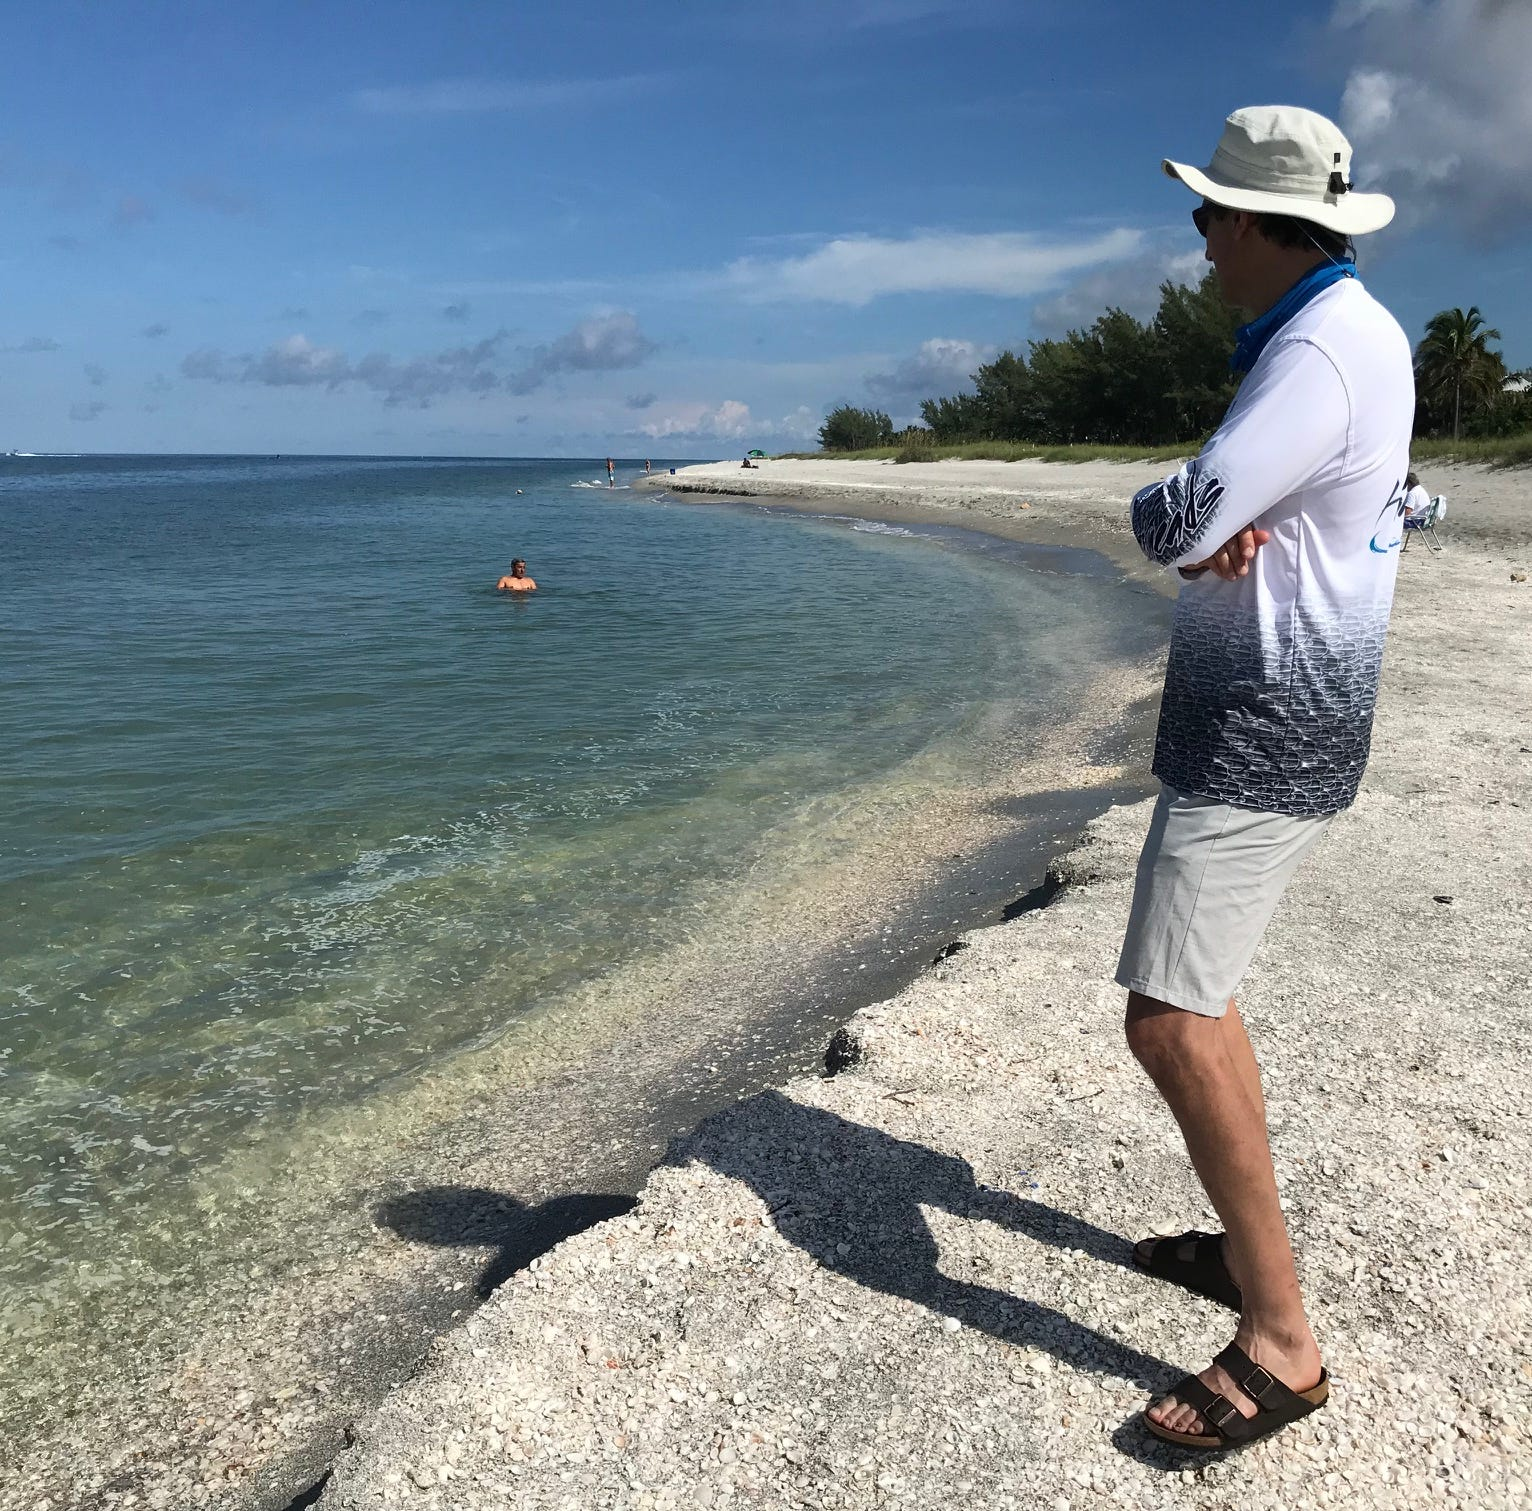 Red tide levels are low, but growing season is just beginning